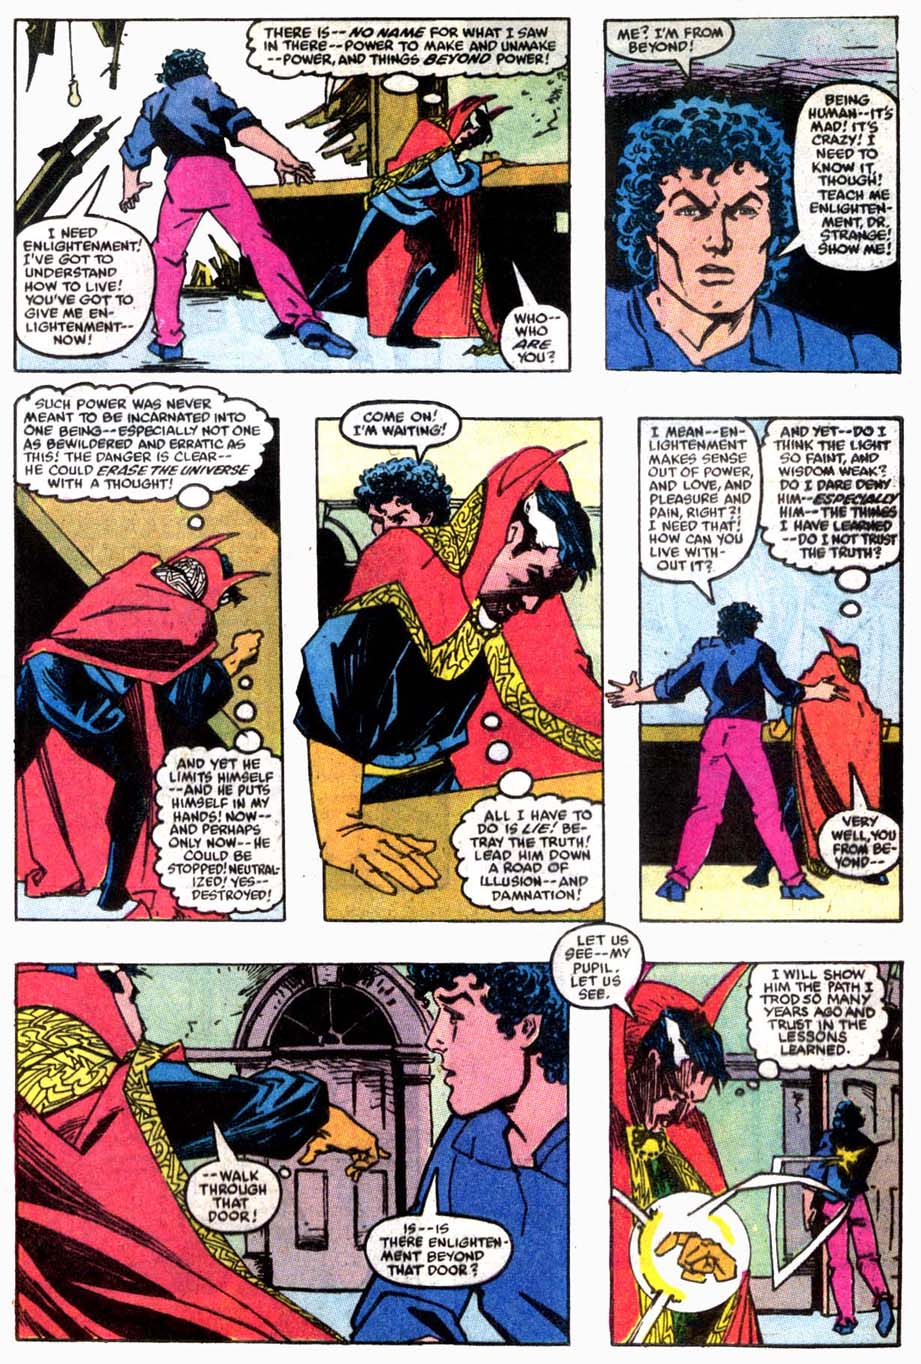 Doctor Strange (Classic) Fears Pre-Retcon Beyonder Rco01510